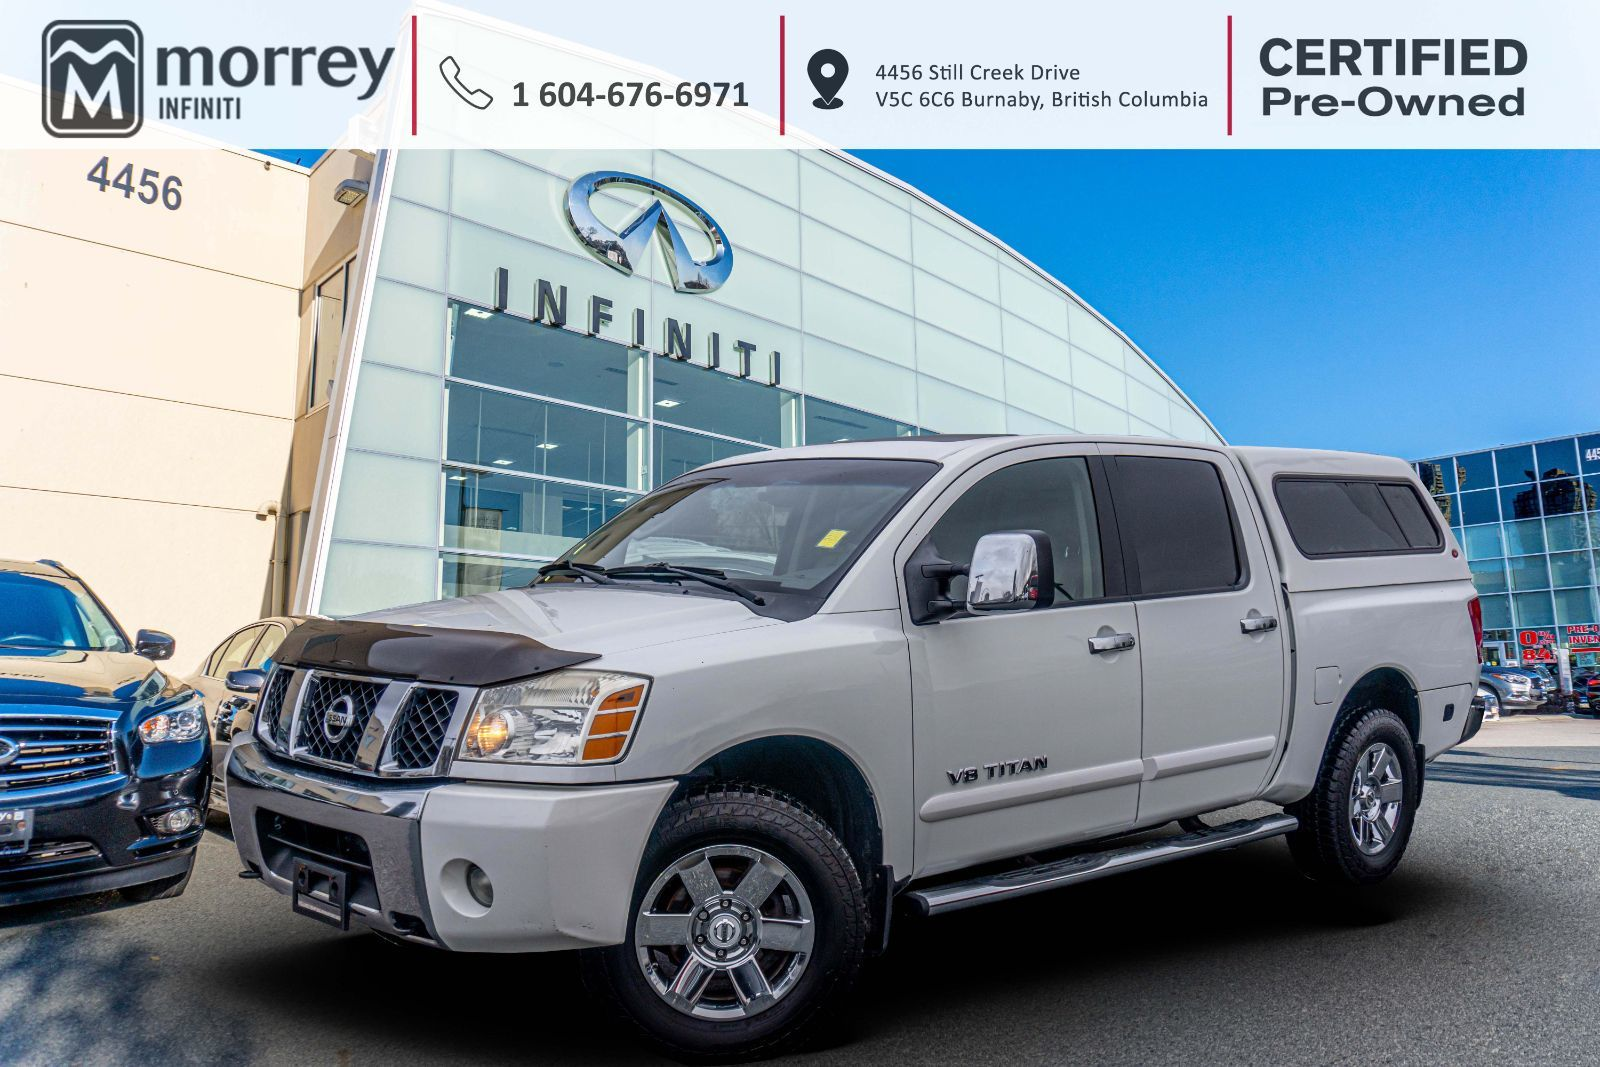 Morrey Nissan Of Burnaby Pre Owned 2007 Titan Le Crewcab 4x4 Leather 10 900